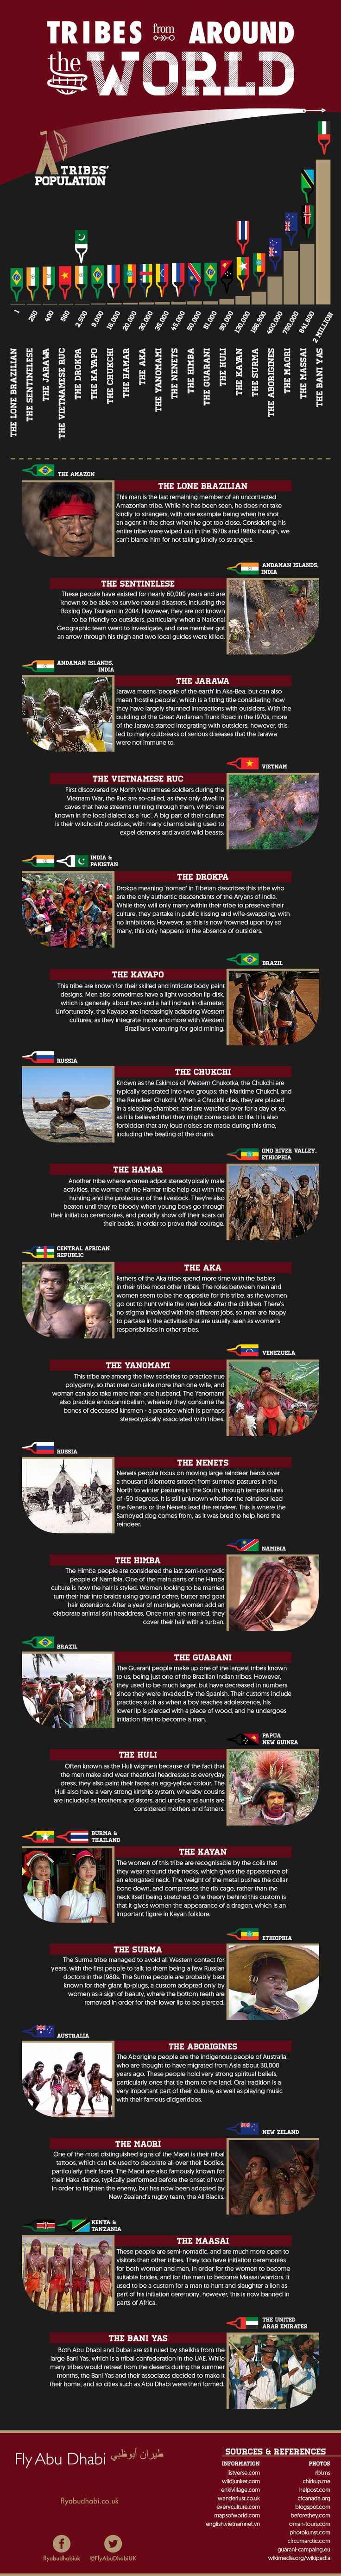 Tribes from Around the World #Infographic #Travel